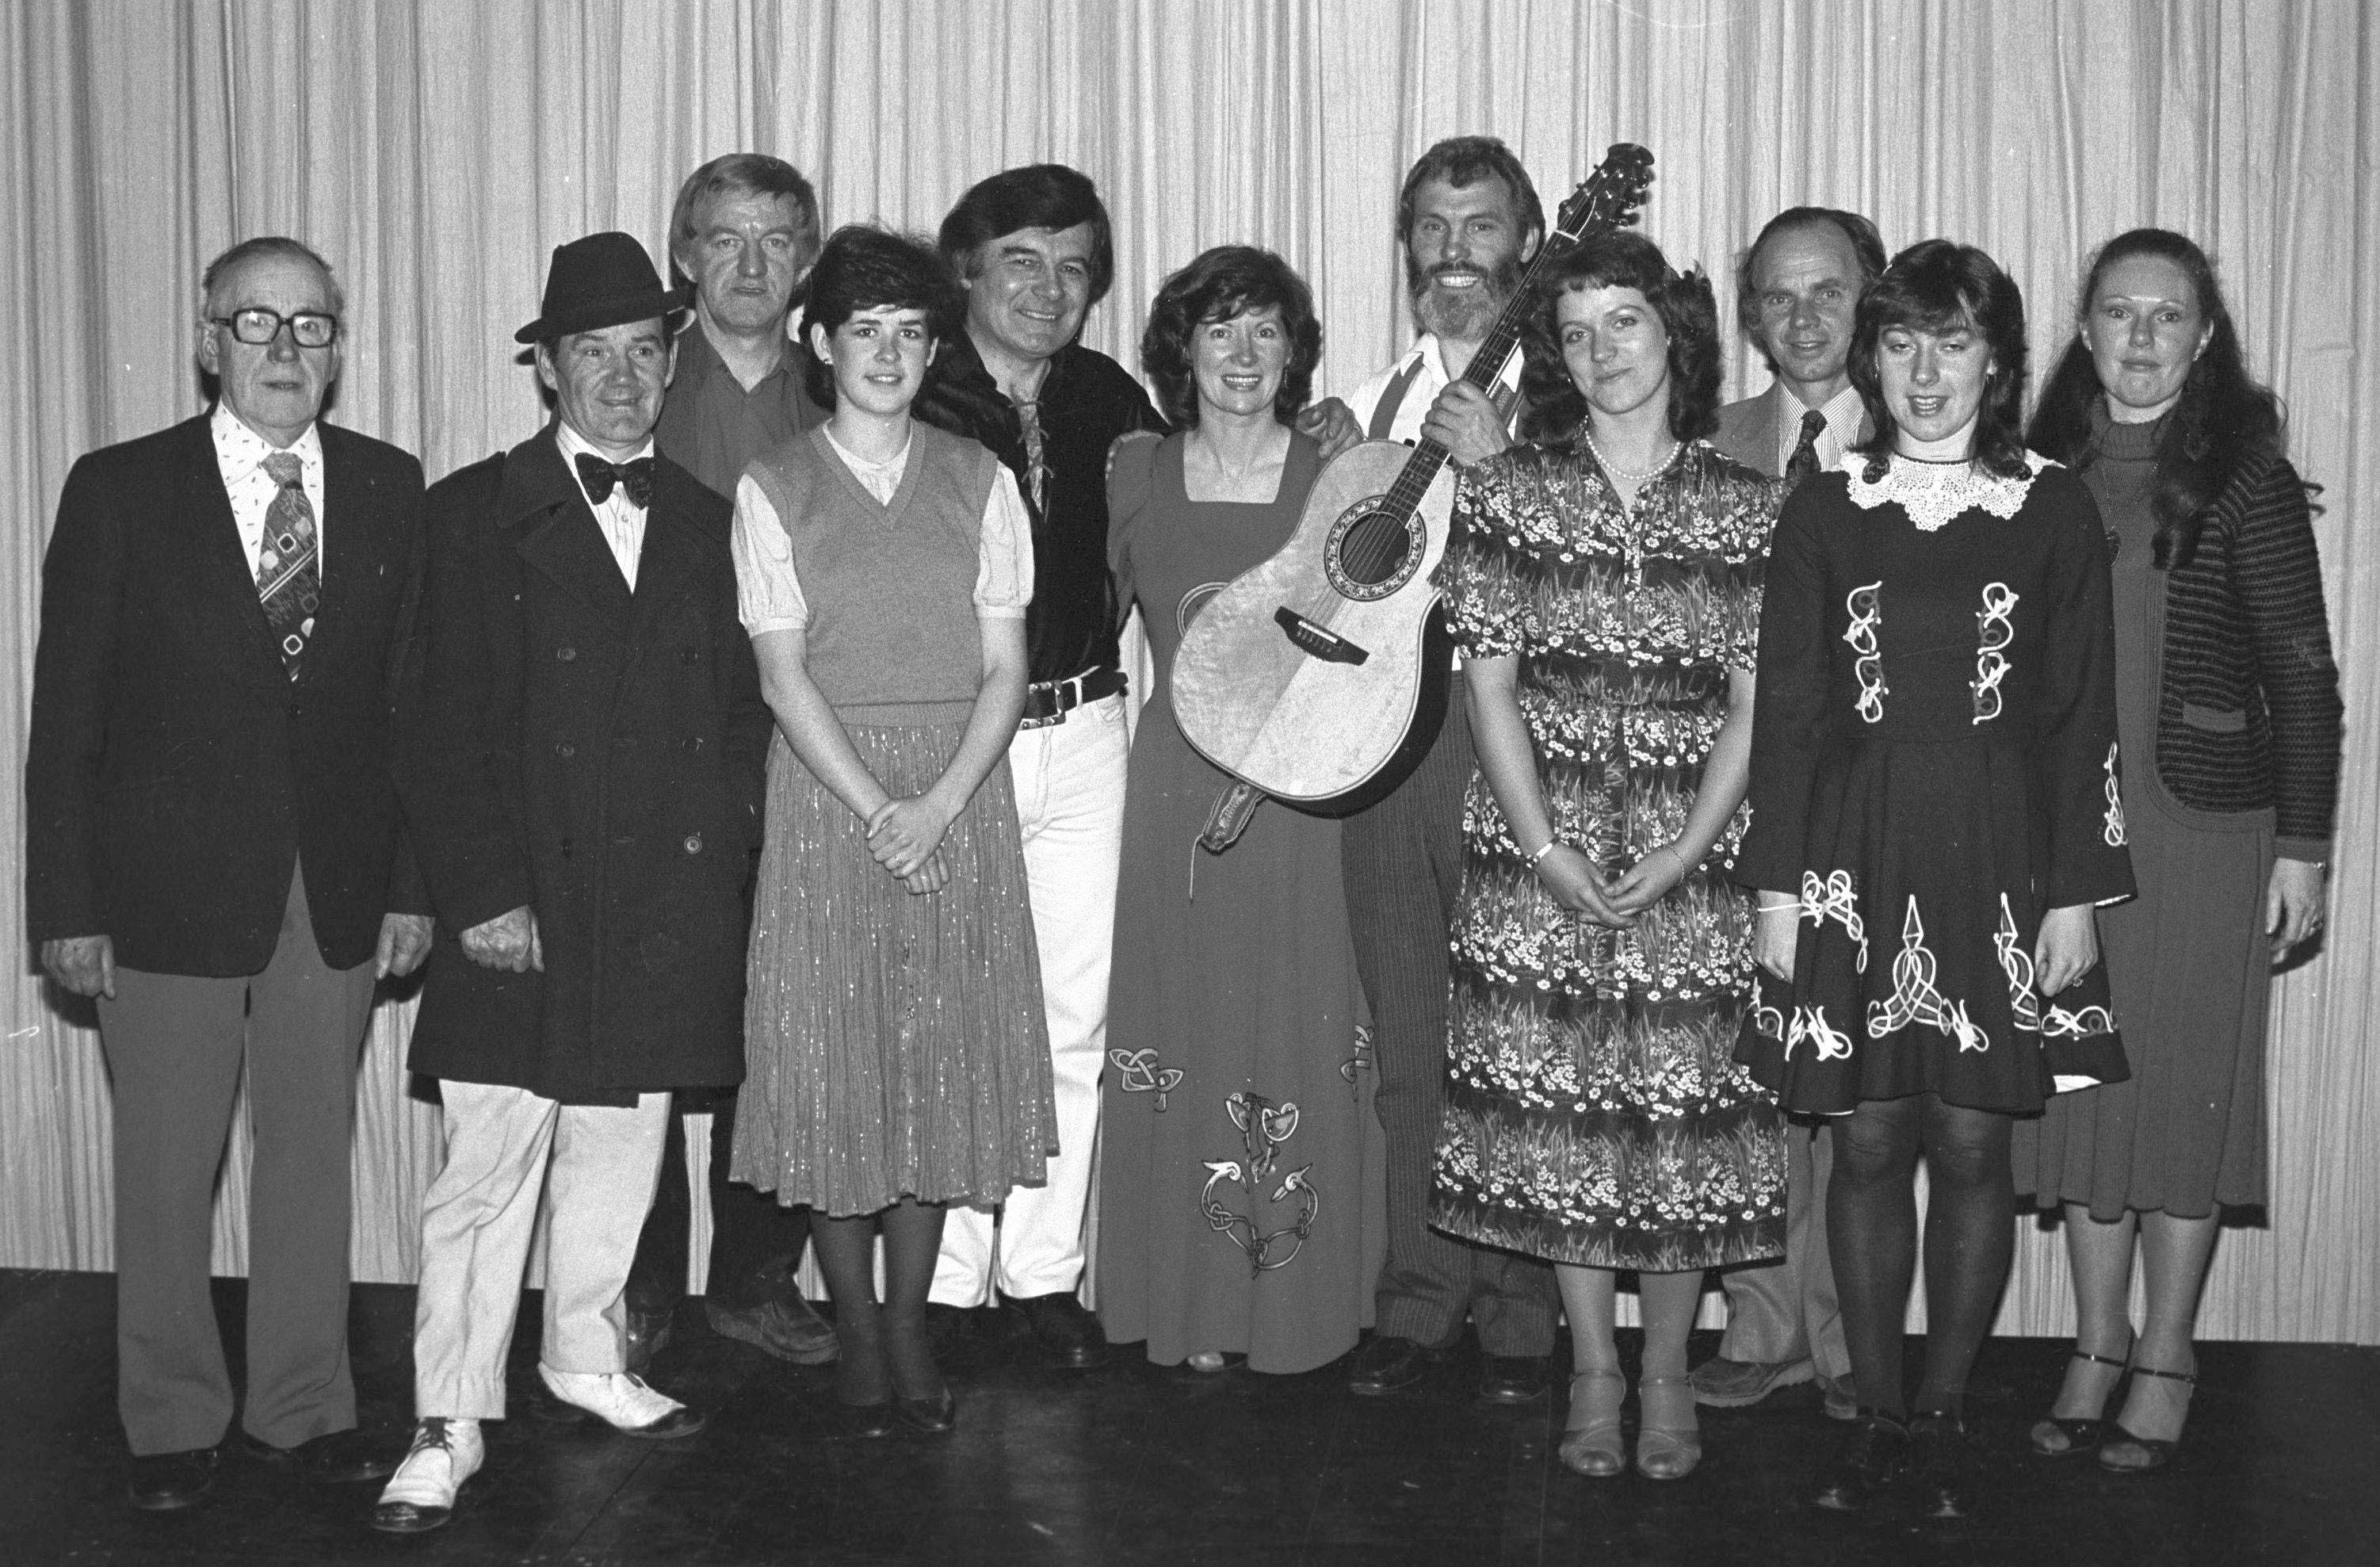 SHARE fundraiser in St Louise\'s with Jim Carty (MC), David Rowlands, Alice McEvoy (SHARE), Gerry Millar, Anne and Francie Brolly, Eileen Depo, Eileen Rocks, Susan Lavery. (A'town News, May 1982)